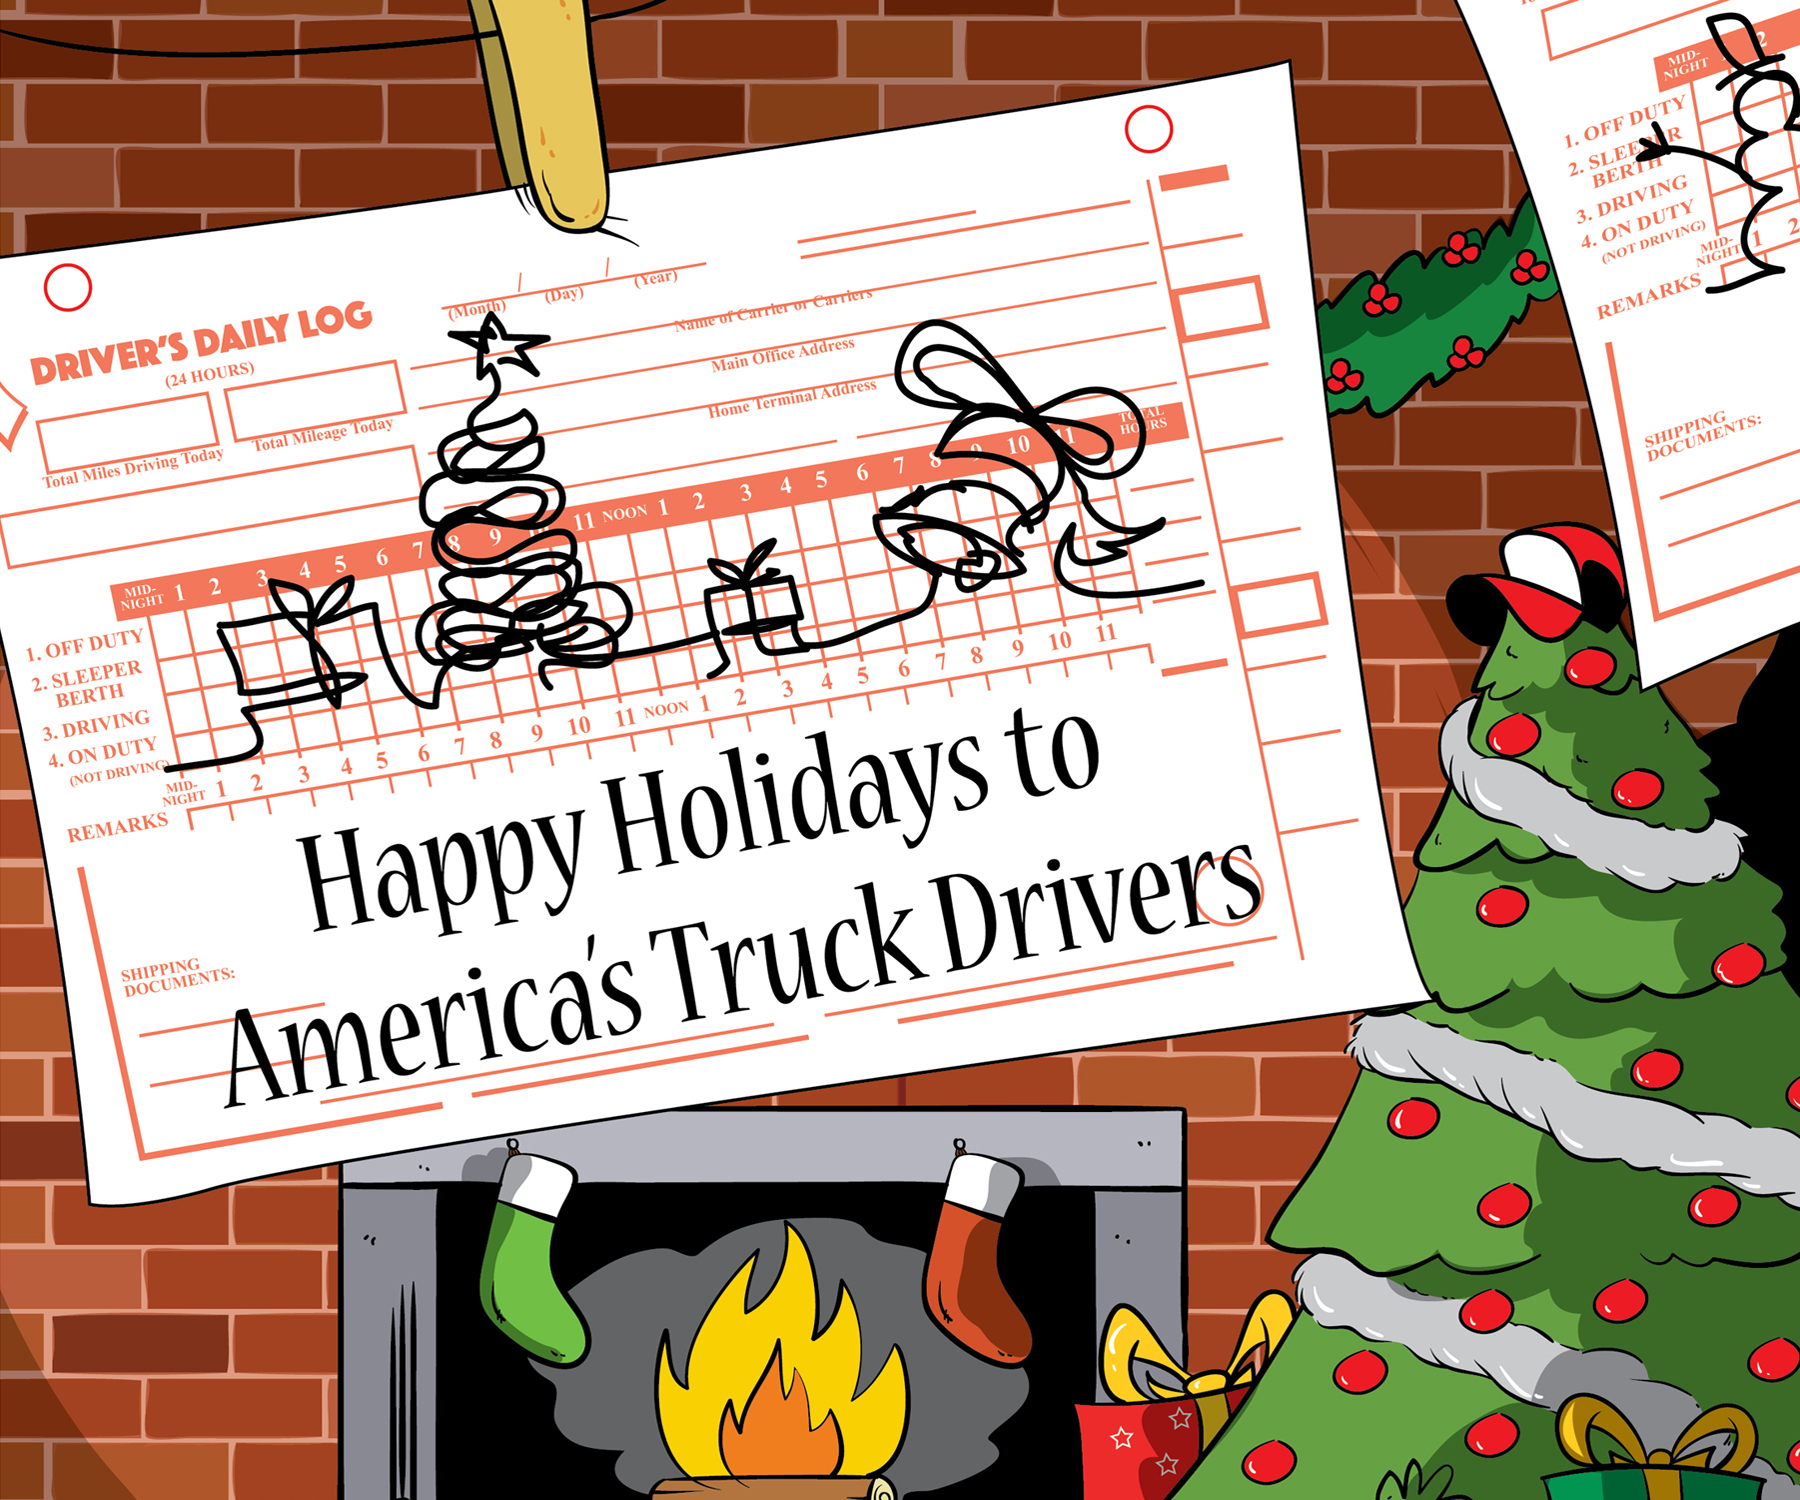 Seasons Greetings From The Eld Mandate Samsung Business Insights